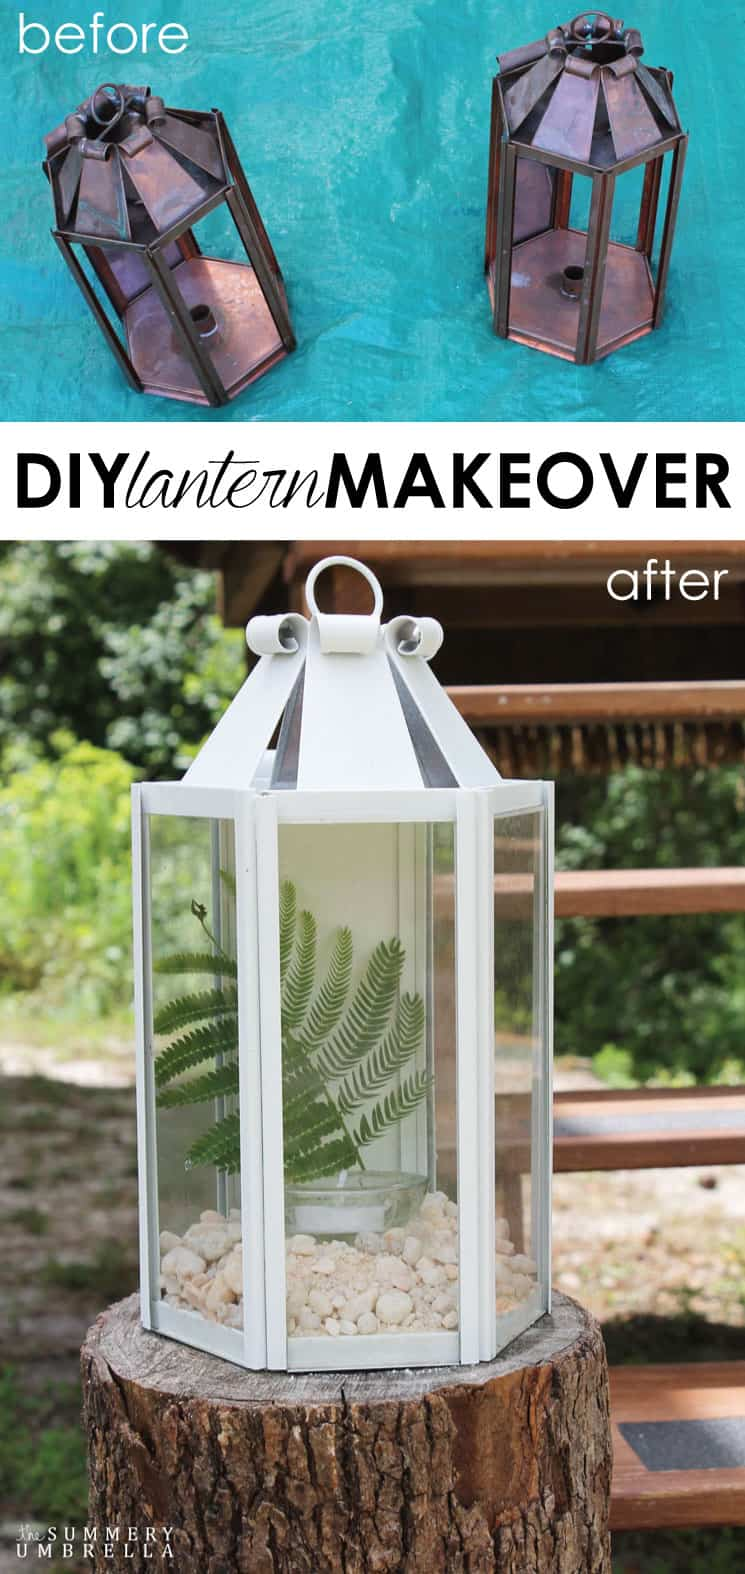 Your friends will think you spent A LOT of money when they see your new DIY lantern makeover! However, this beauty isn't only easy, but budget-friendly too!